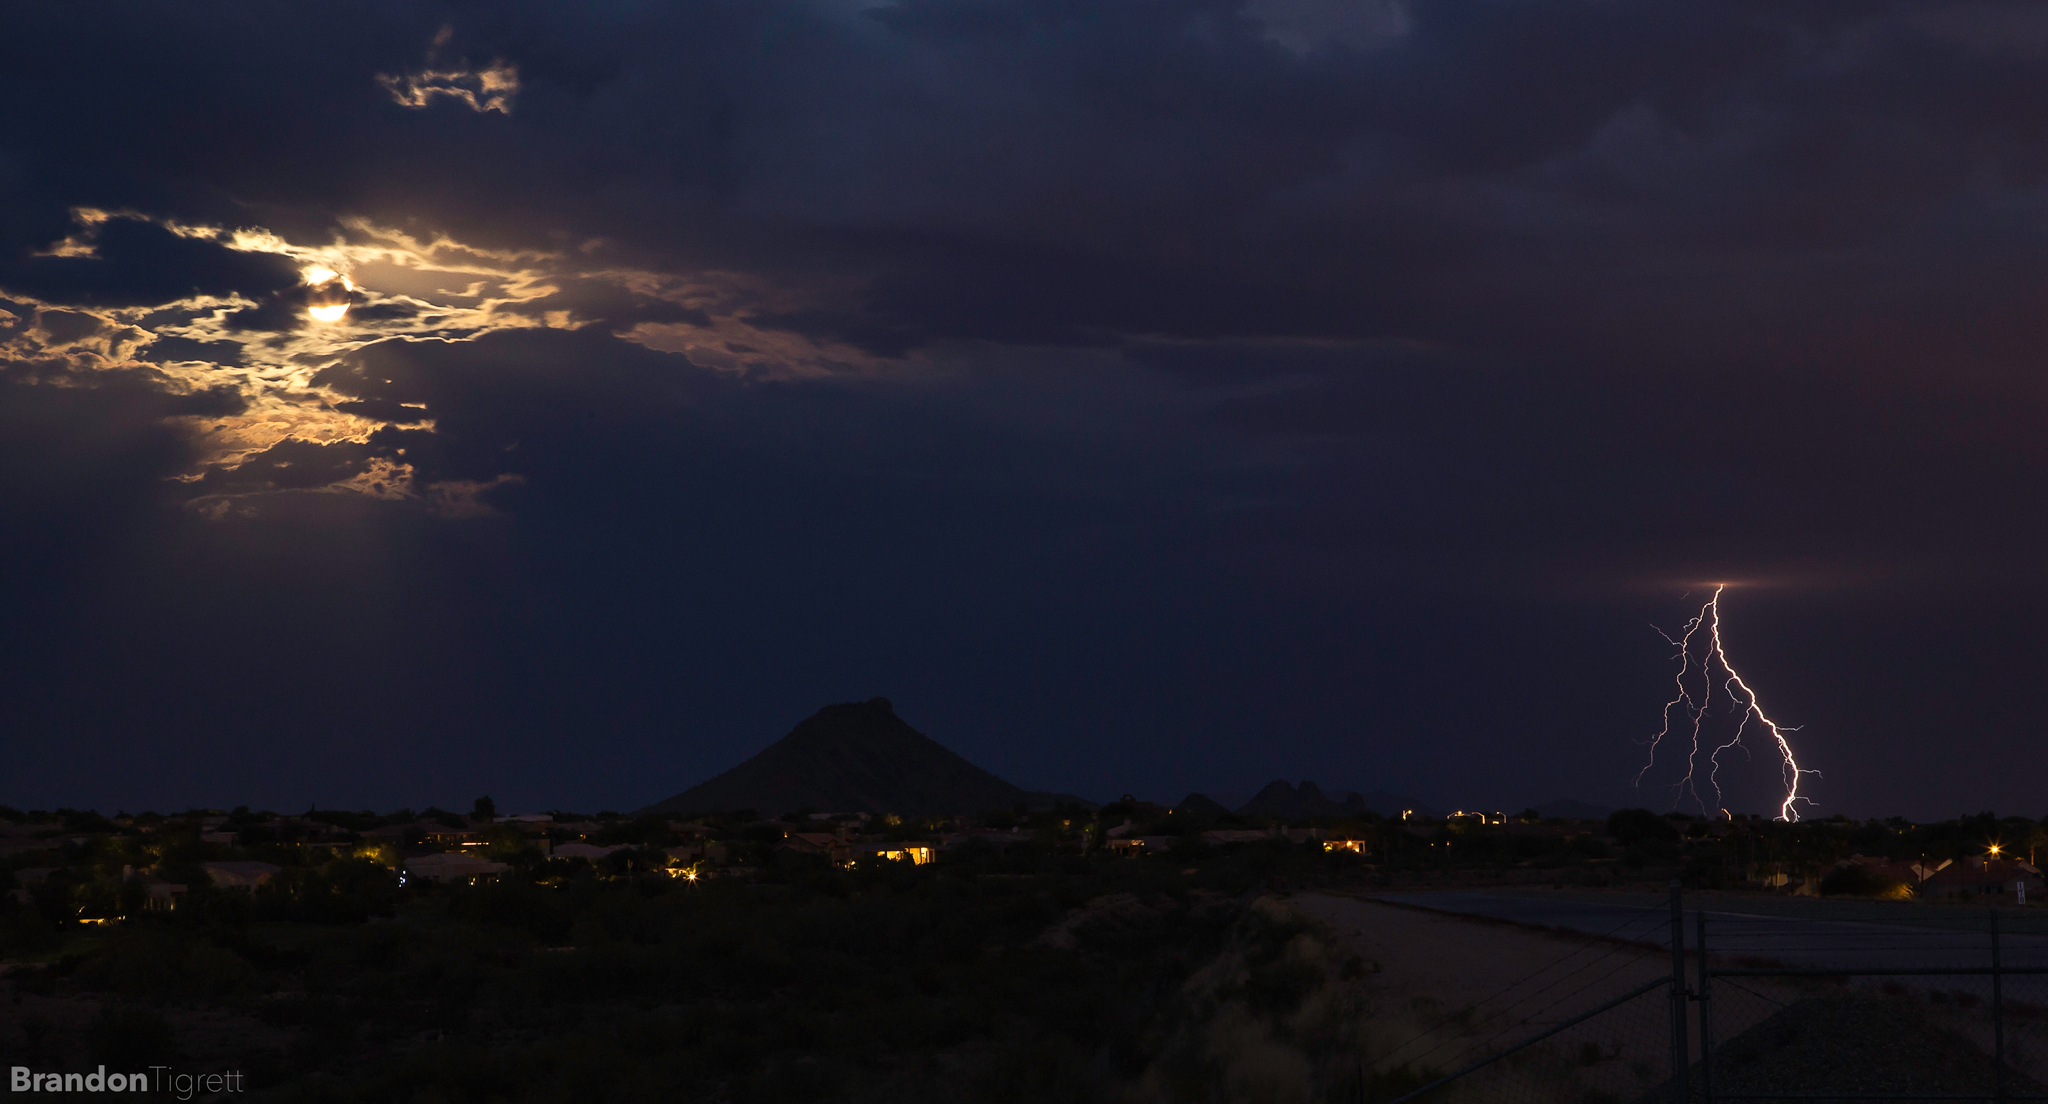 2014_Brandon-Tigrett_Scottsdale_Supermoon-2_WEB-FB.jpg